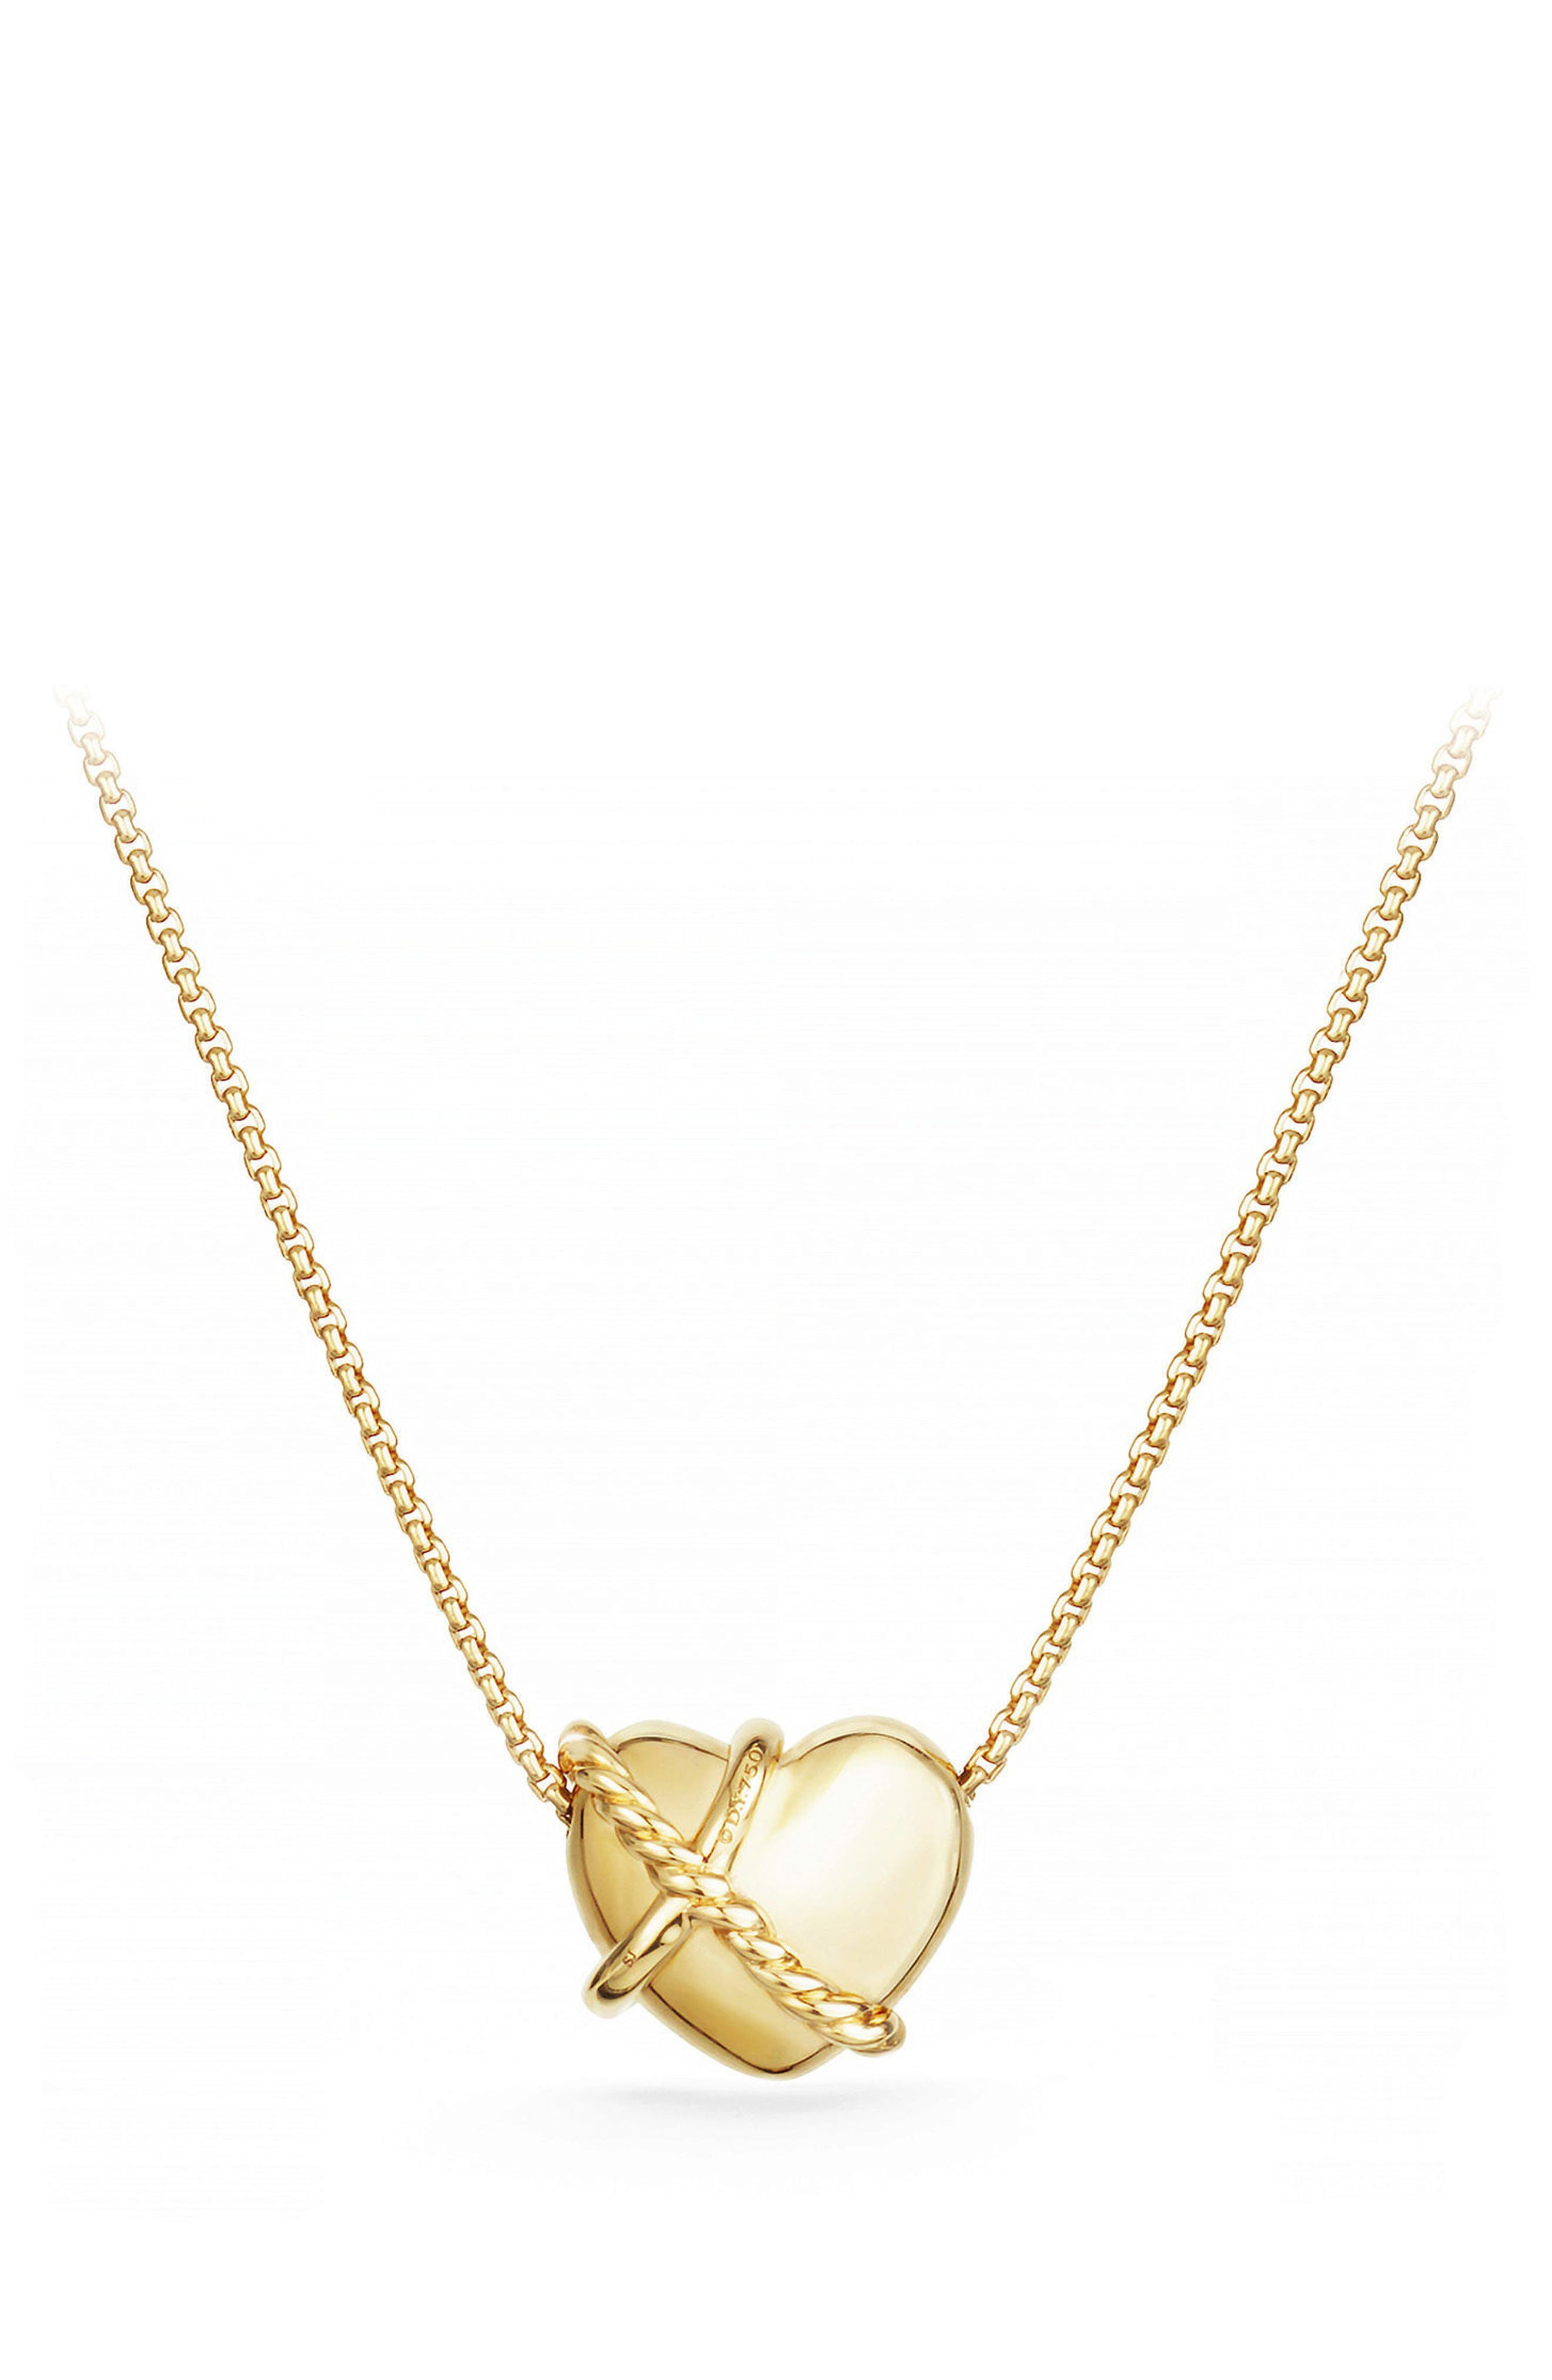 Heart Pendant Necklace in 18K Gold with Diamonds,                             Alternate thumbnail 4, color,                             YELLOW GOLD/ DIAMOND